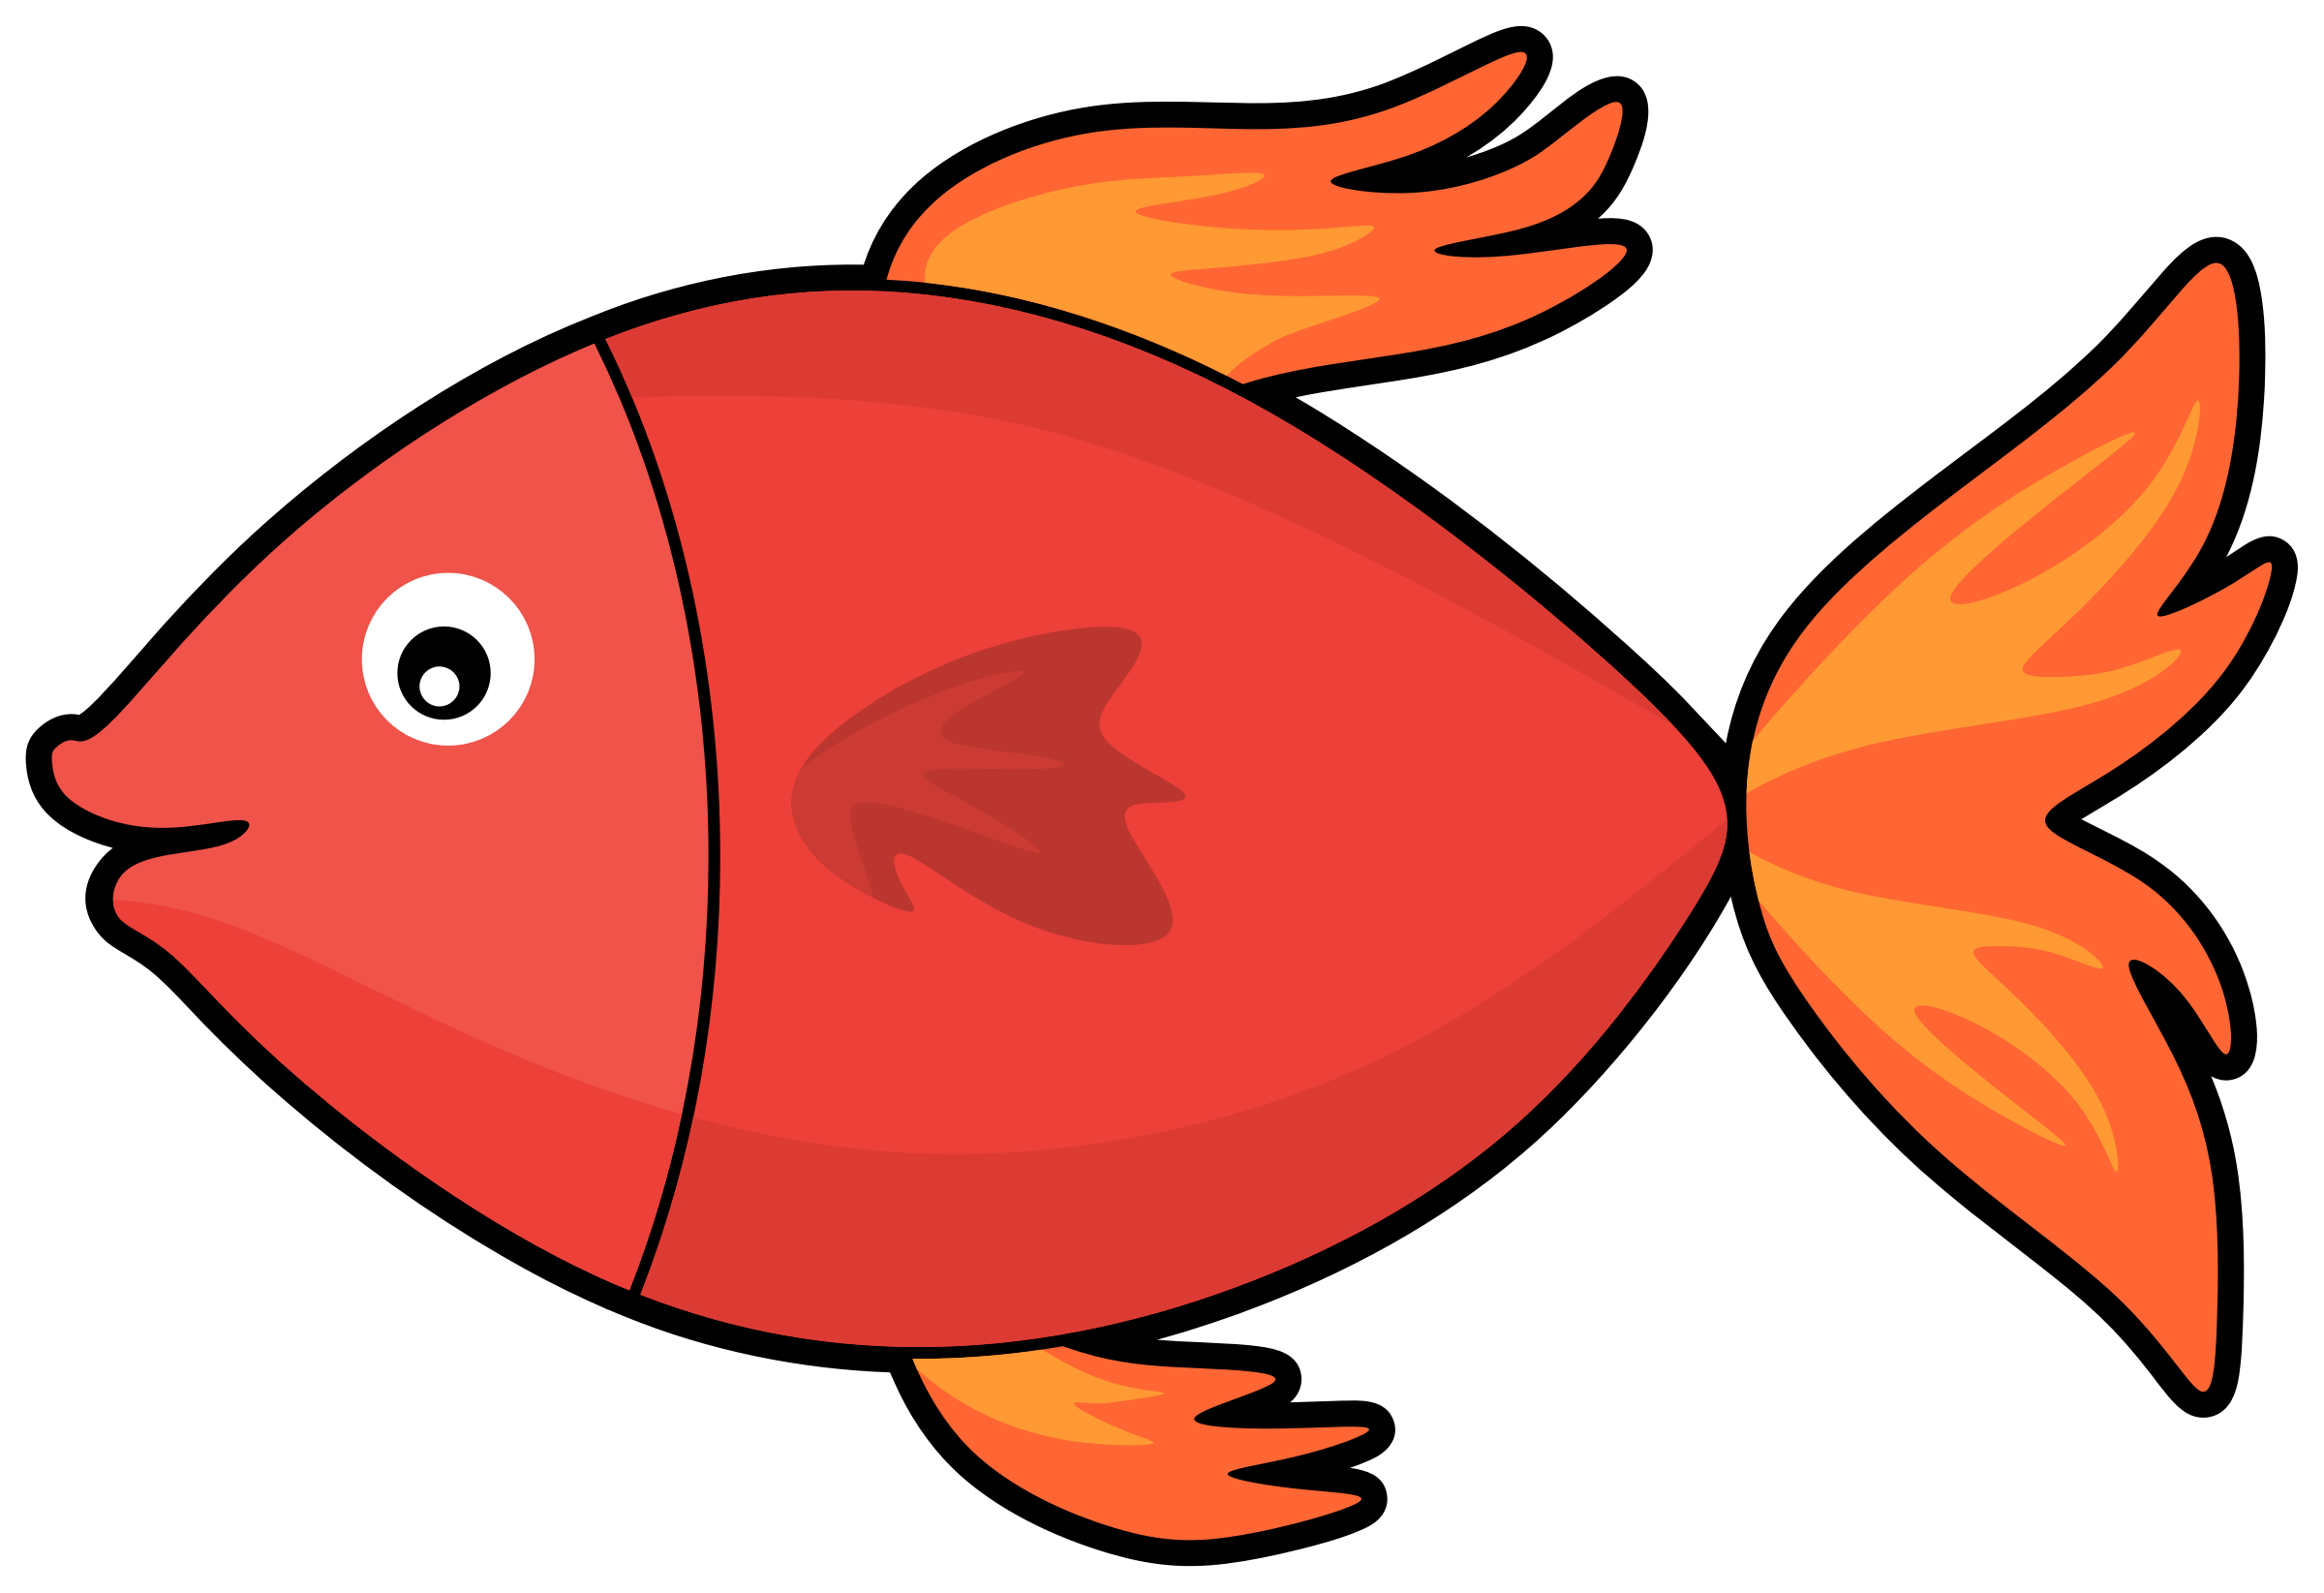 Red fish clipart clipart free Butterfly Fish Clipart at GetDrawings.com | Free for personal use ... clipart free